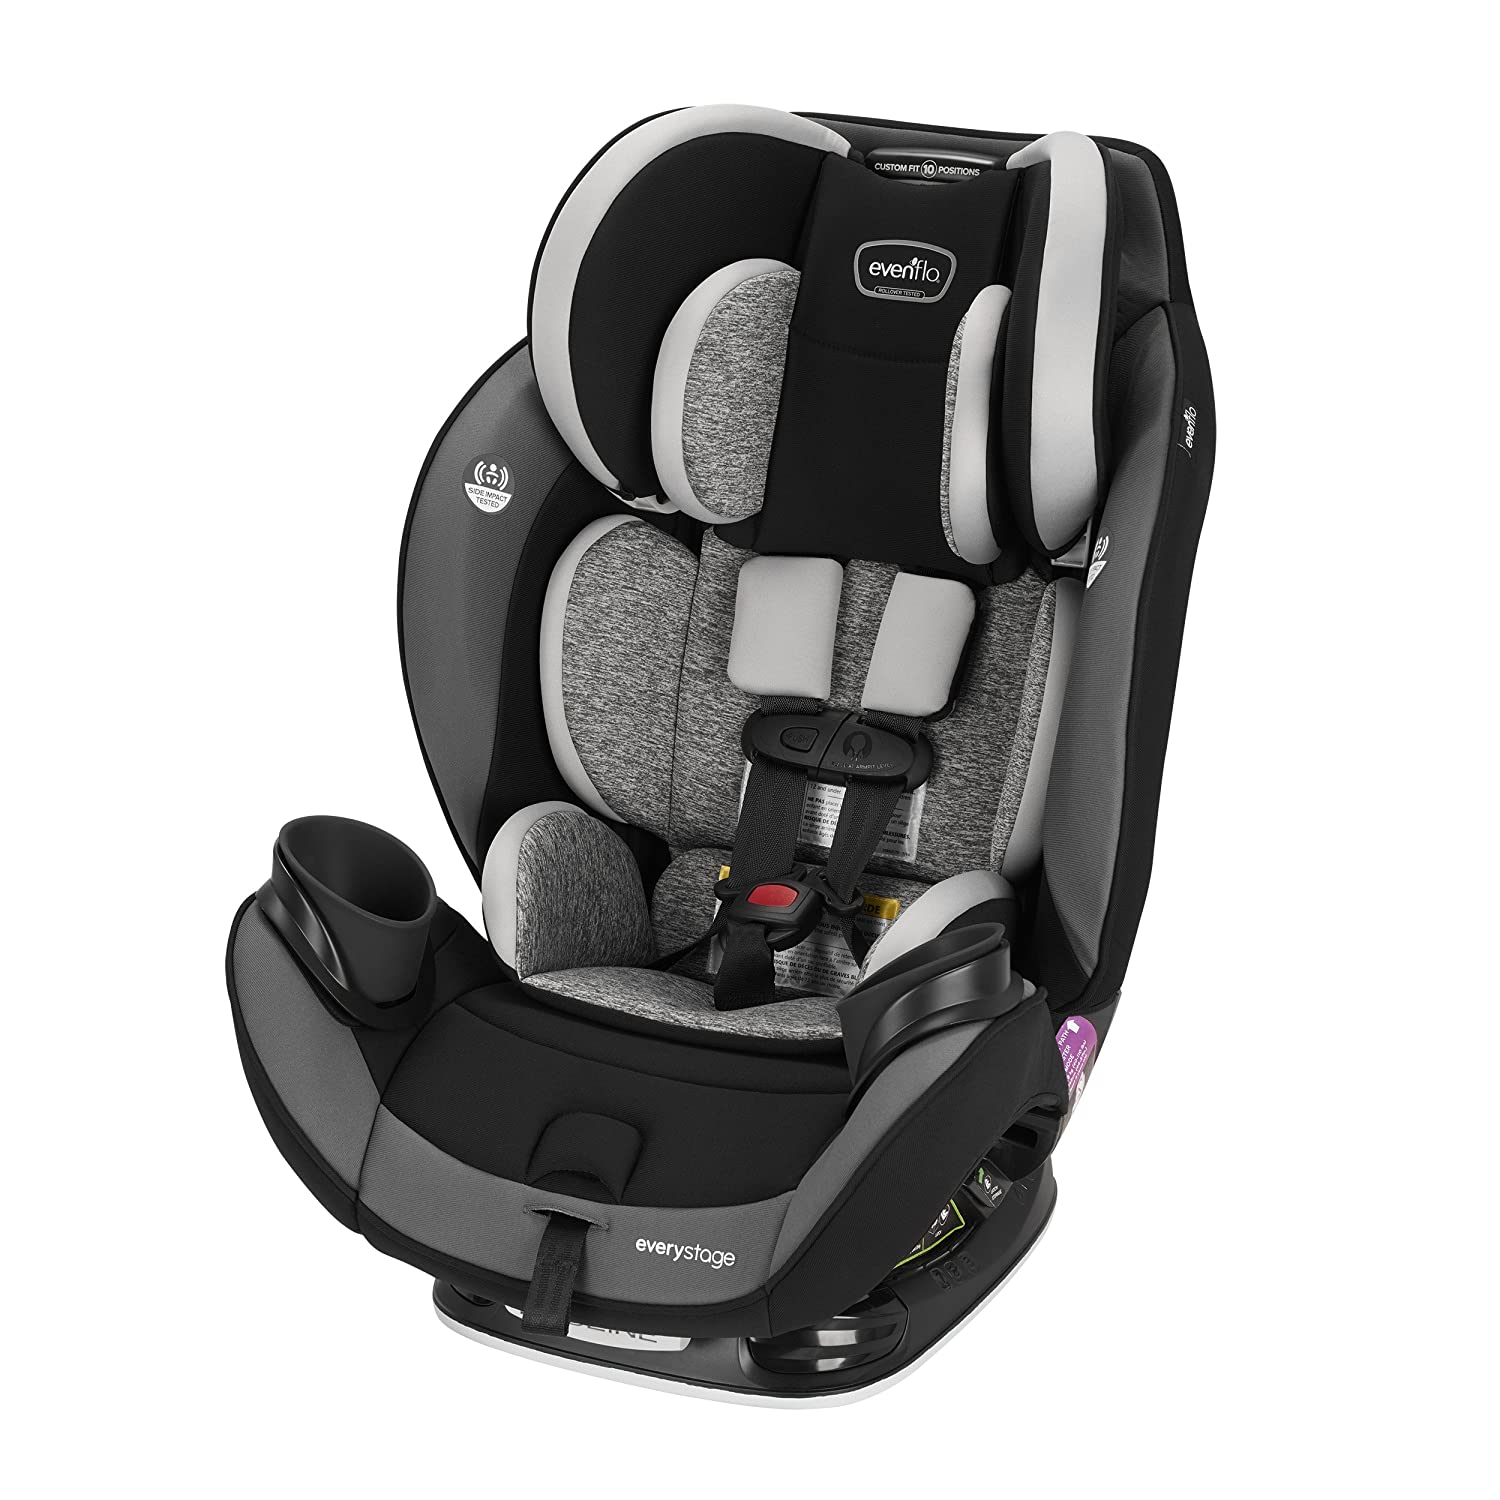 Evenflo Everystage Dlx All In One Car Seat Kids Rear Facing Seat Convertible Booster Seat Grows